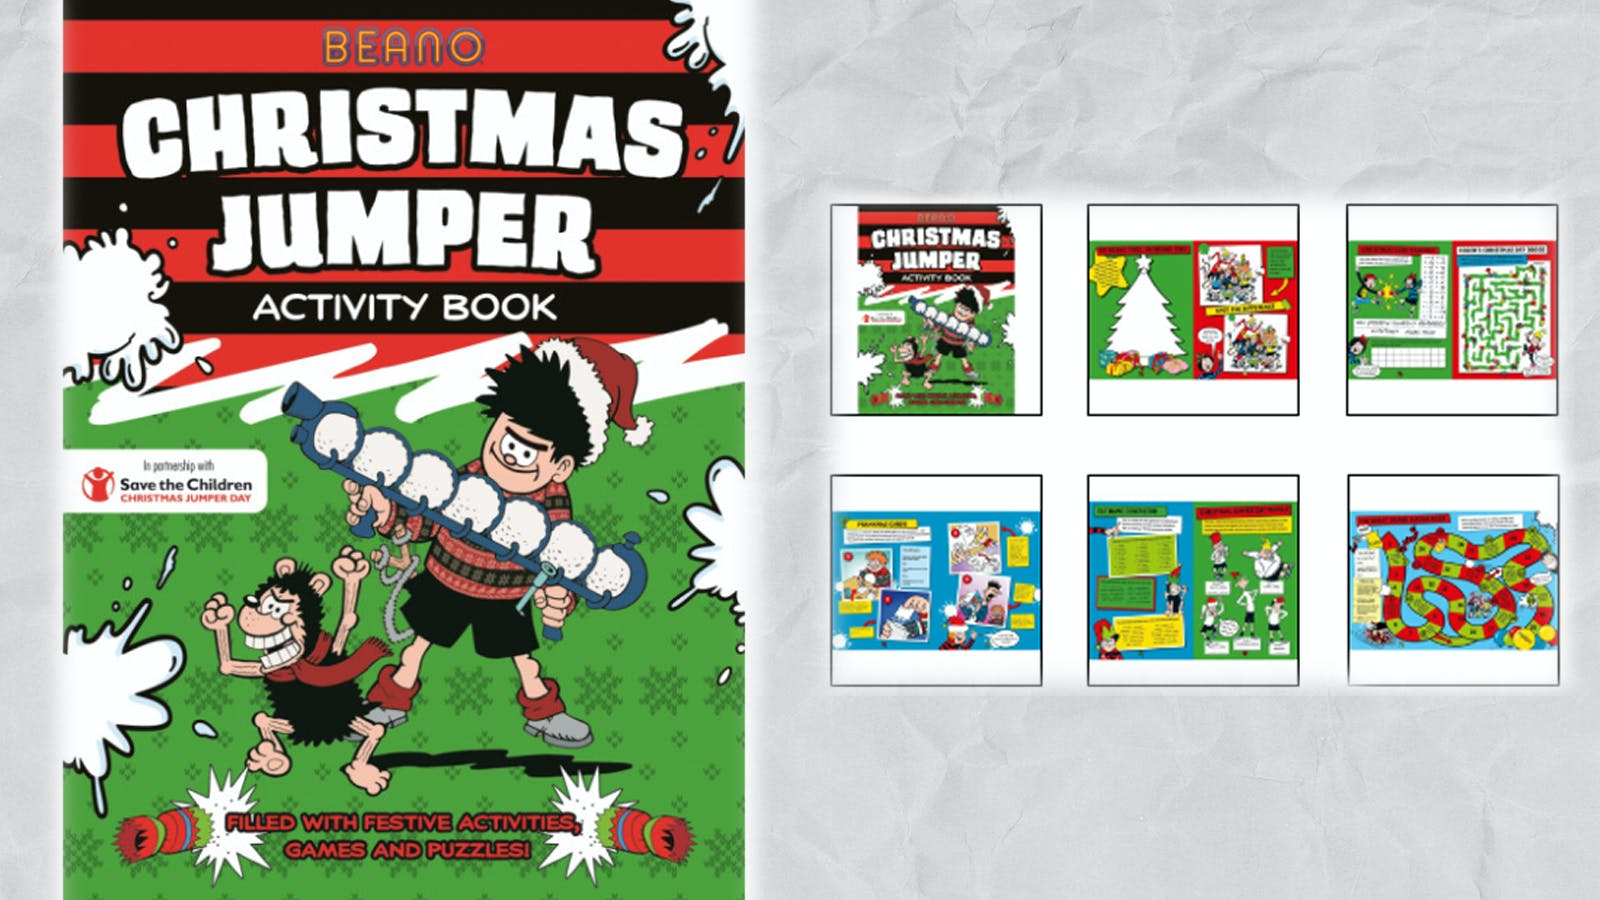 Buy the Beano Christmas Jumper Book